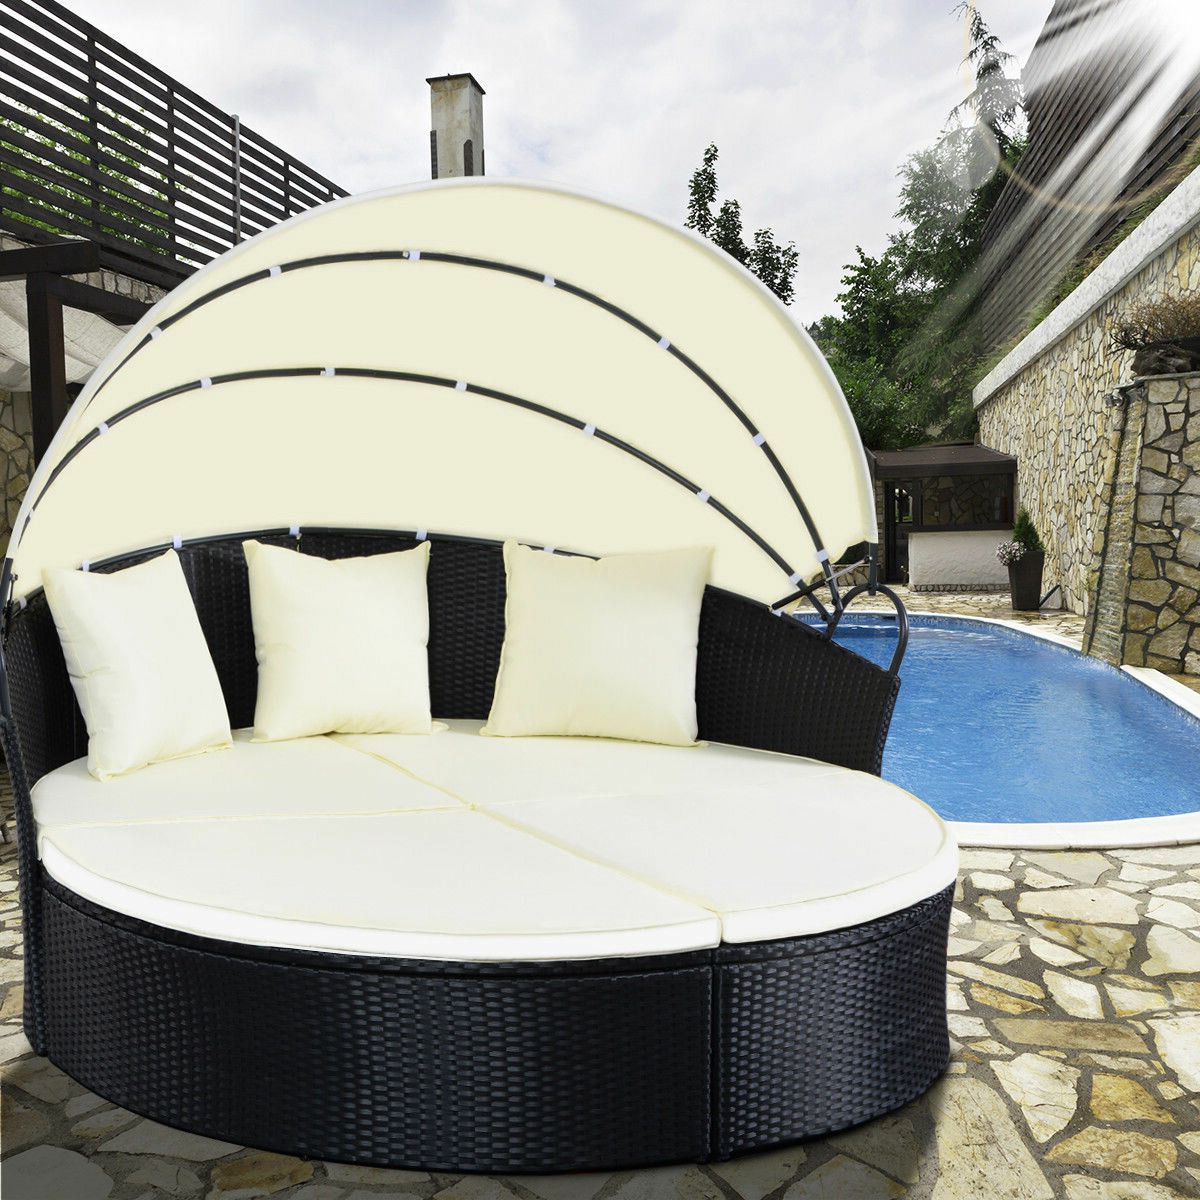 Gilbreath Daybeds With Cushions In Fashionable Hamisi Patio Daybed With Cushions (View 9 of 20)